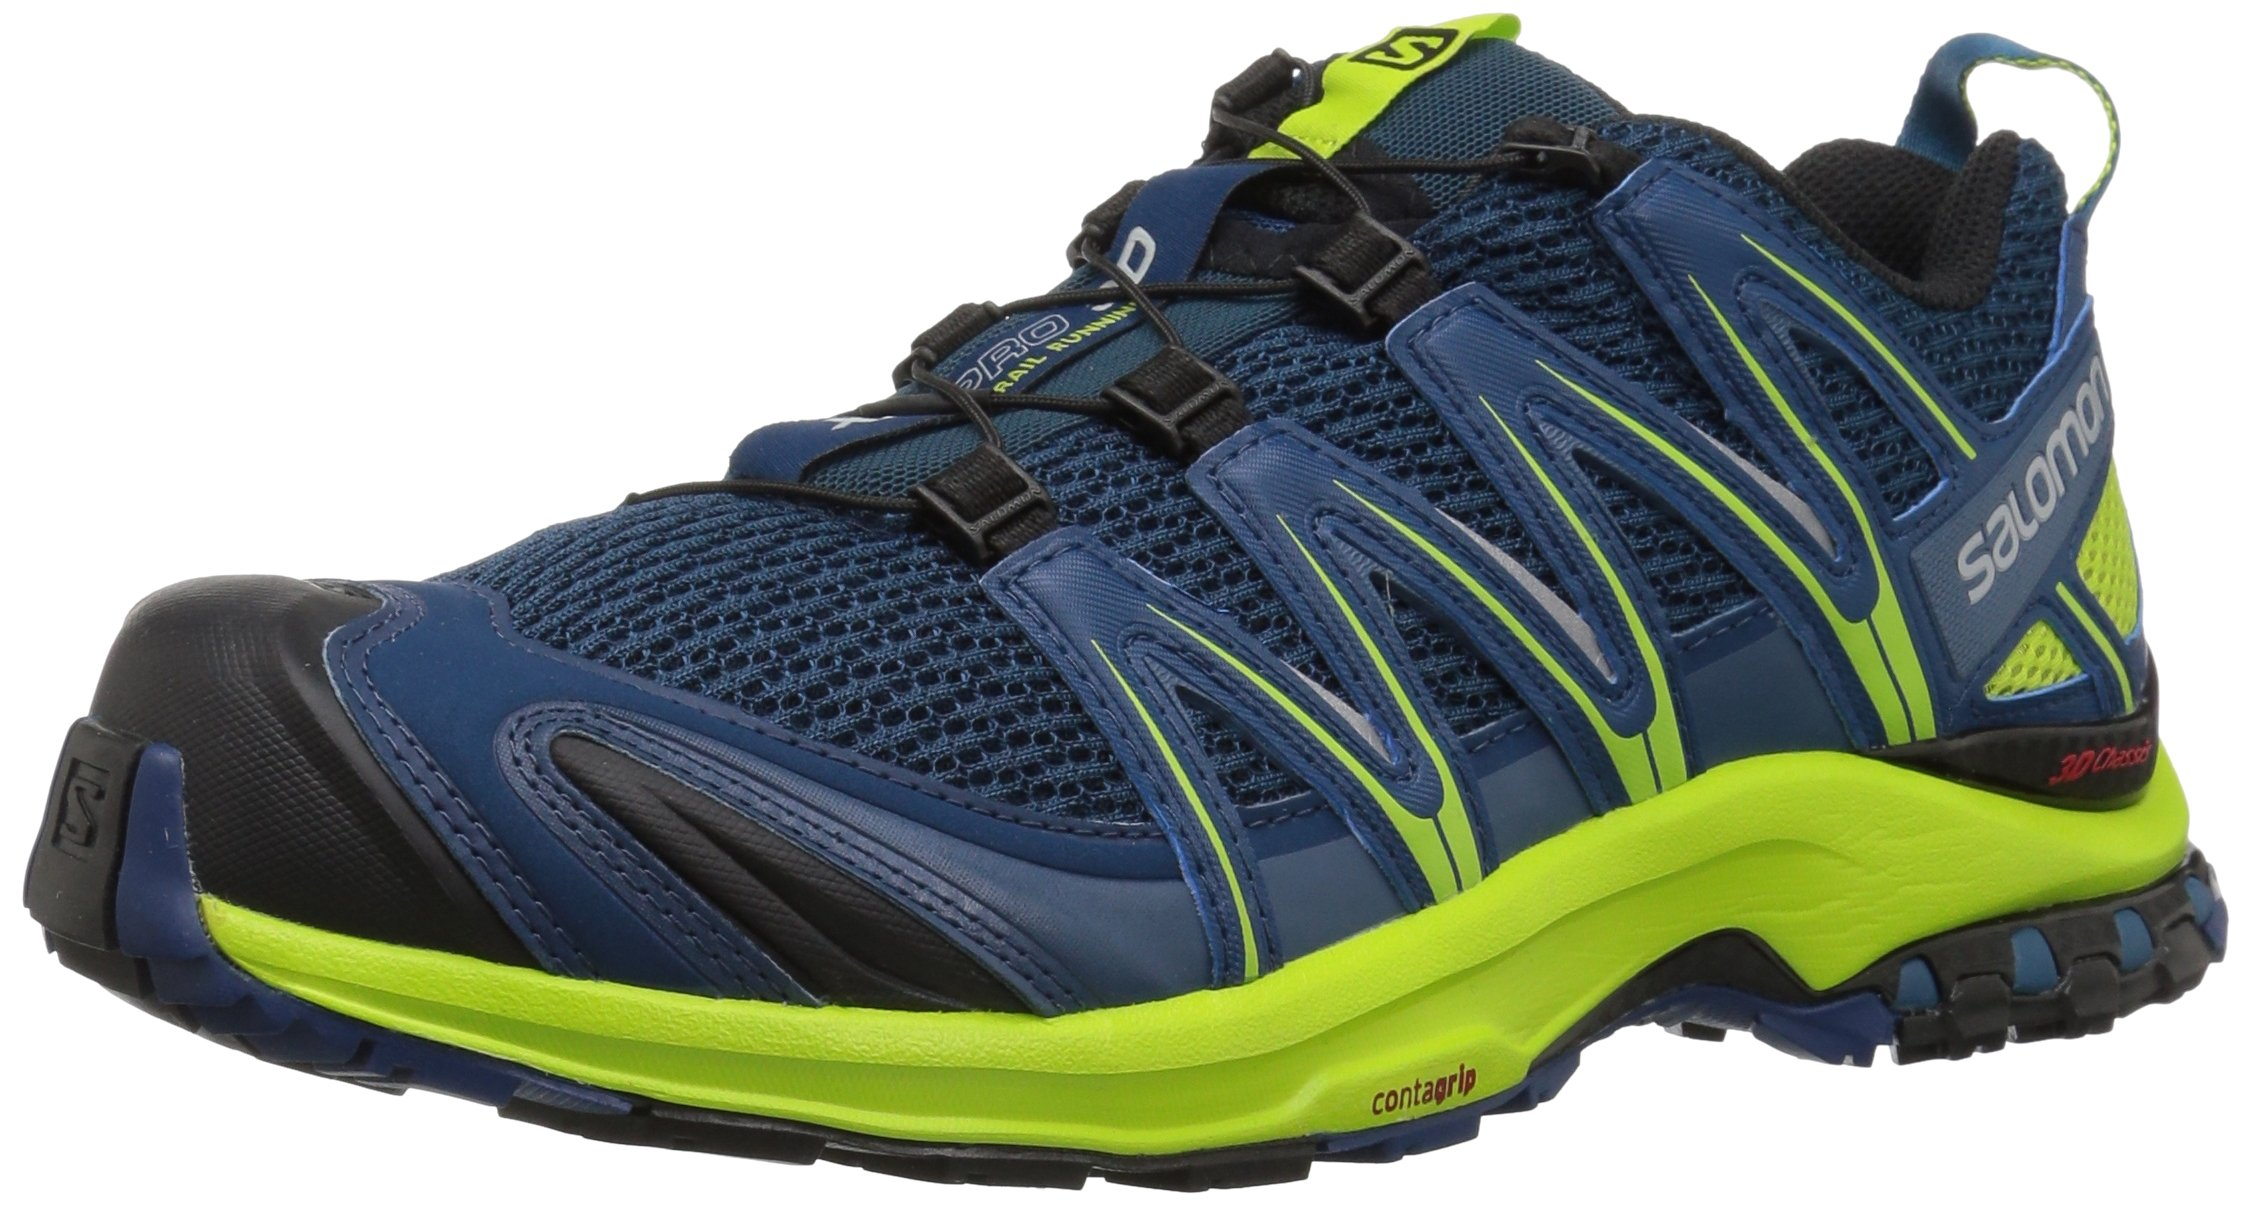 Salomon Men's XA Pro 3D Trail Running Shoes, Poseidon, 12 M US